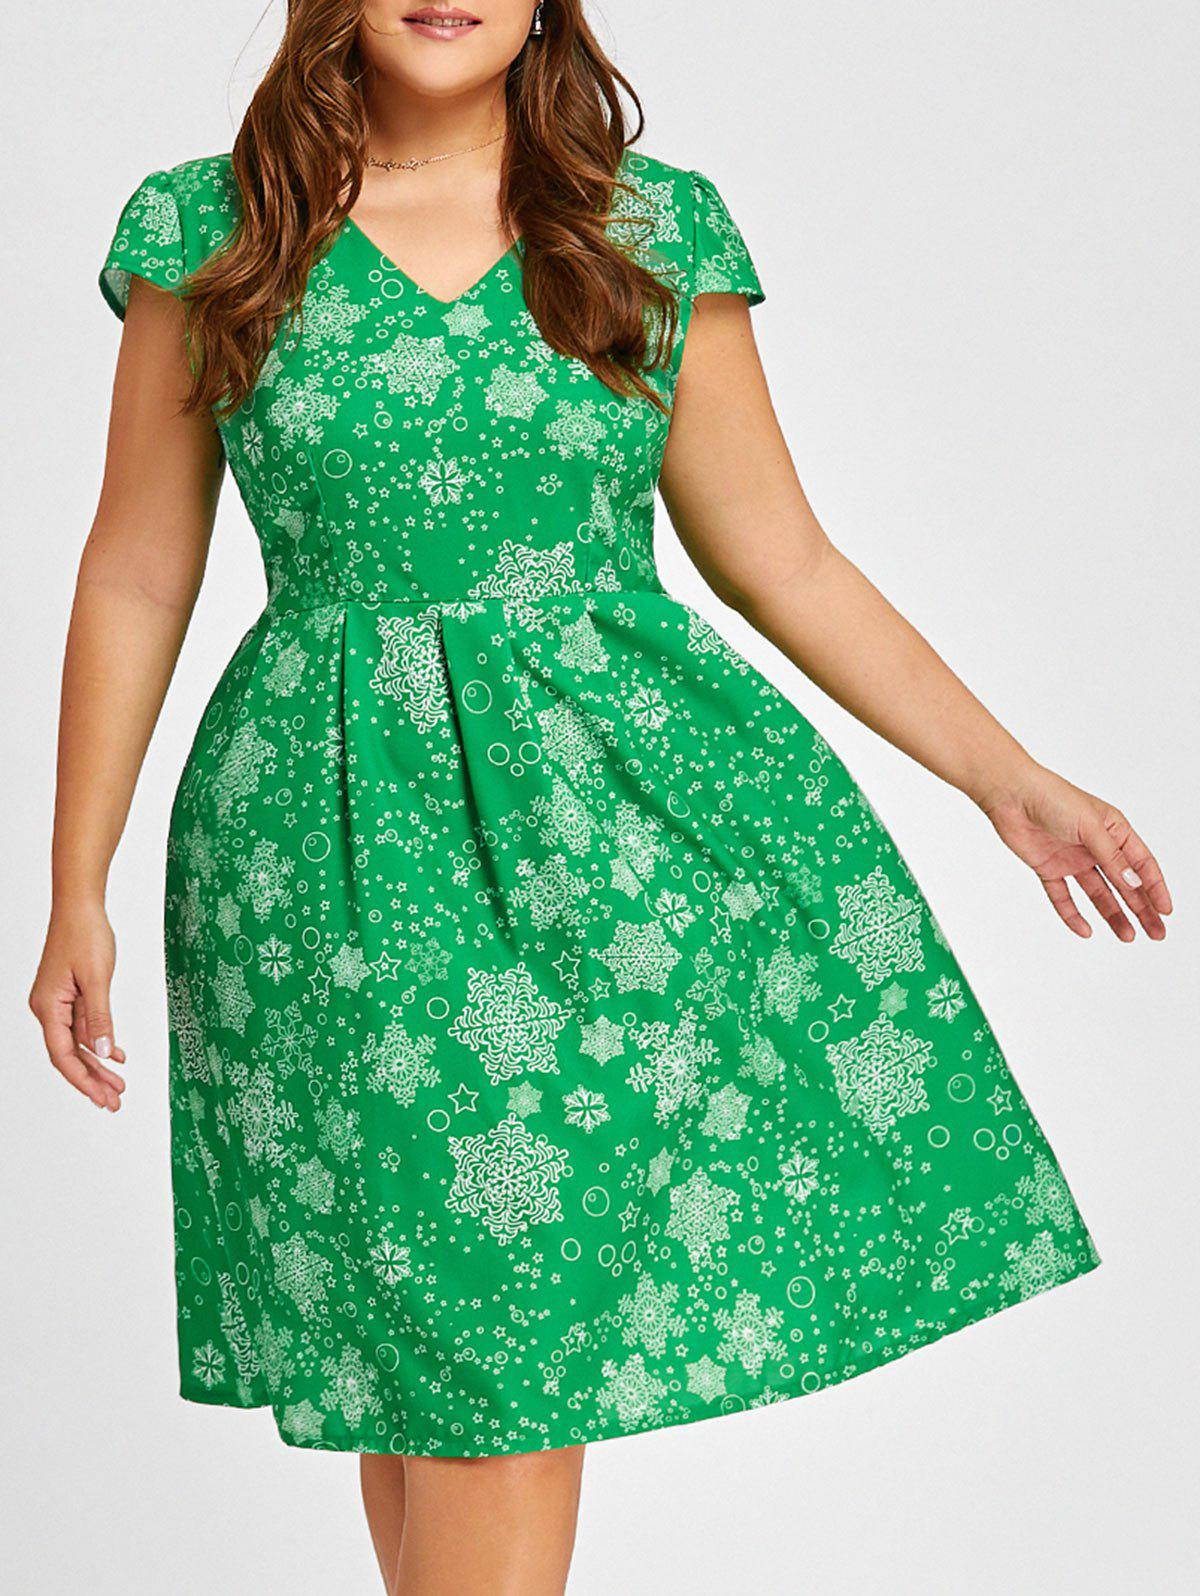 Christmas Snowflake V Neck Vintage Plus Size DressWOMEN<br><br>Size: 4XL; Color: GREEN; Style: Vintage; Material: Polyester; Silhouette: A-Line; Dresses Length: Knee-Length; Neckline: V-Neck; Sleeve Type: Cap Sleeve; Sleeve Length: Short Sleeves; Pattern Type: Print; With Belt: No; Season: Fall,Spring,Summer,Winter; Weight: 0.3050kg; Package Contents: 1 x Dress;